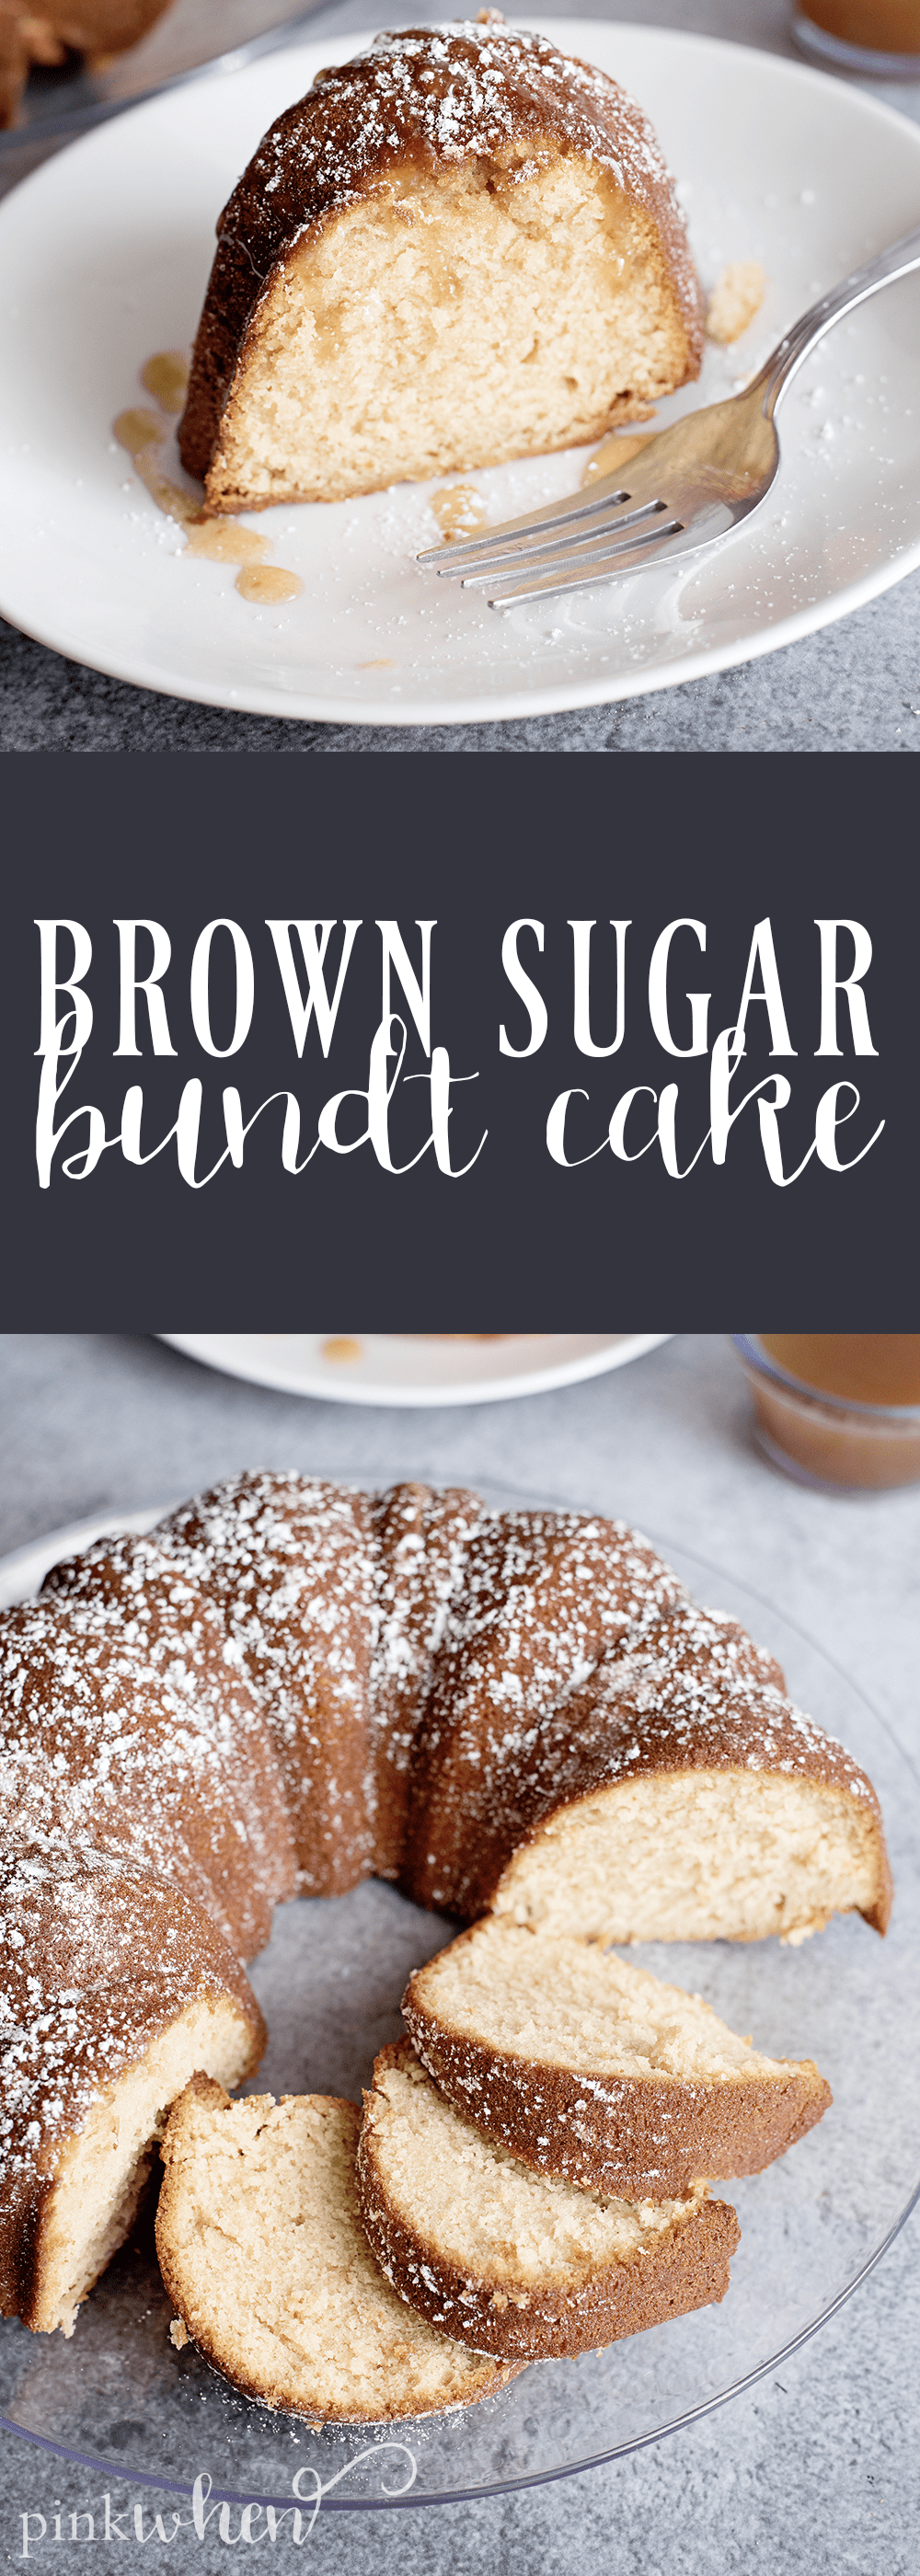 This BROWN SUGAR BUNDT CAKE is a must do recipe. It's one of the best, moist cake recipes I have had in a LONG time. Check it out! #bundtcake #cakerecipe #dessert